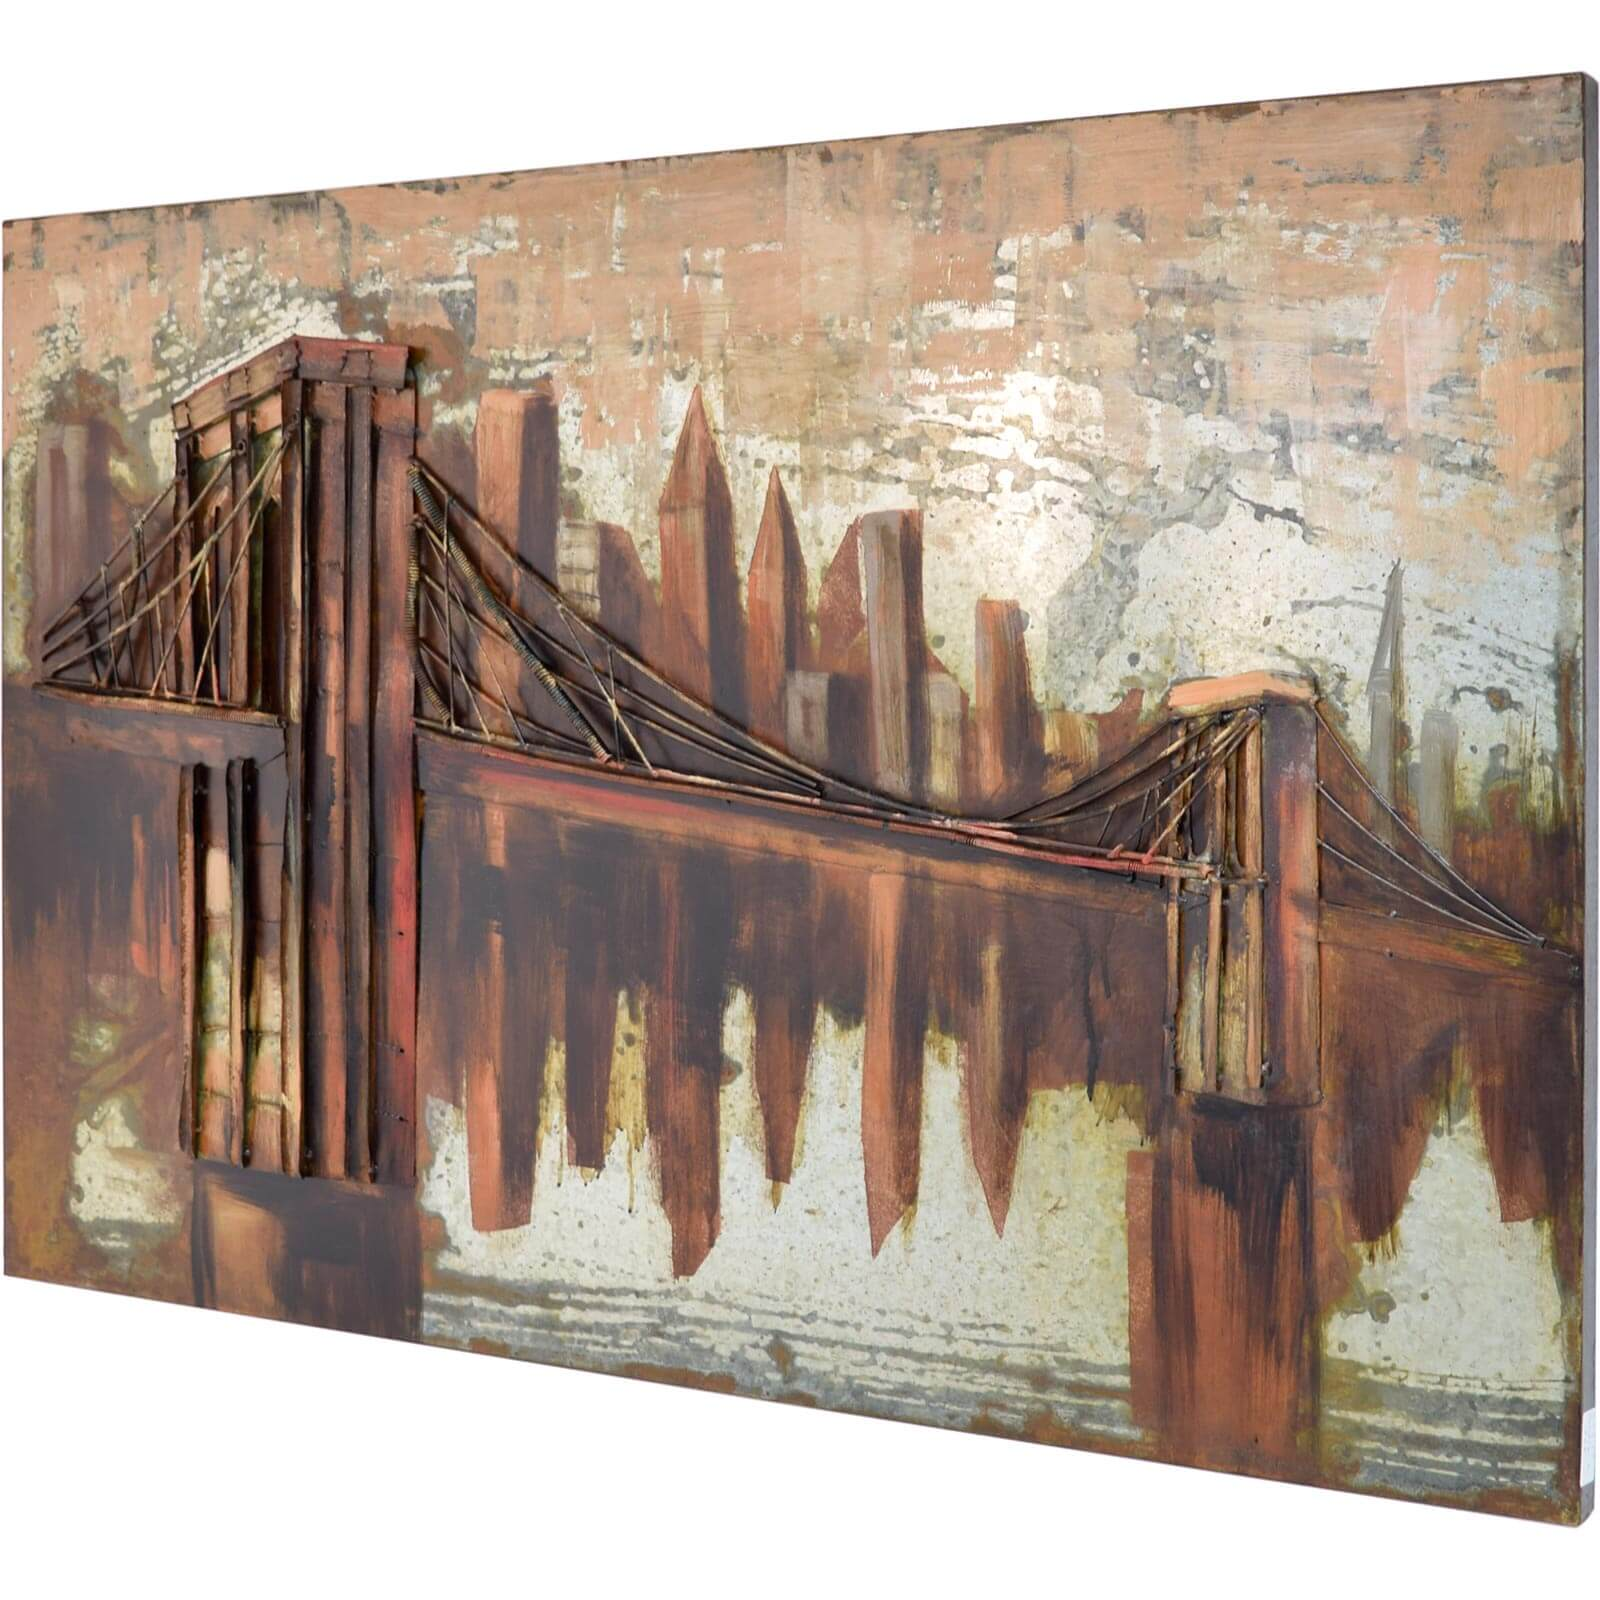 3d-metallbild-brooklyn-bridge-wandbild-120-x-80-cm